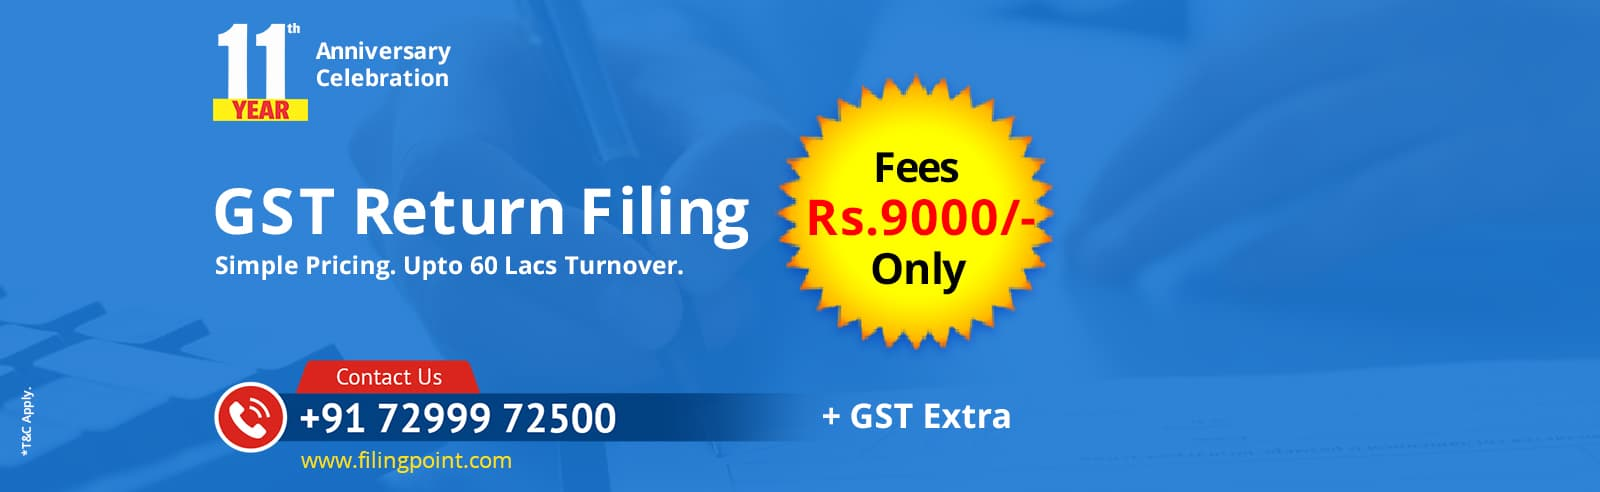 GST Filing Services Near Me Chennai Vasantham Colony Fifth Street Anna Nagar West Ews Colony